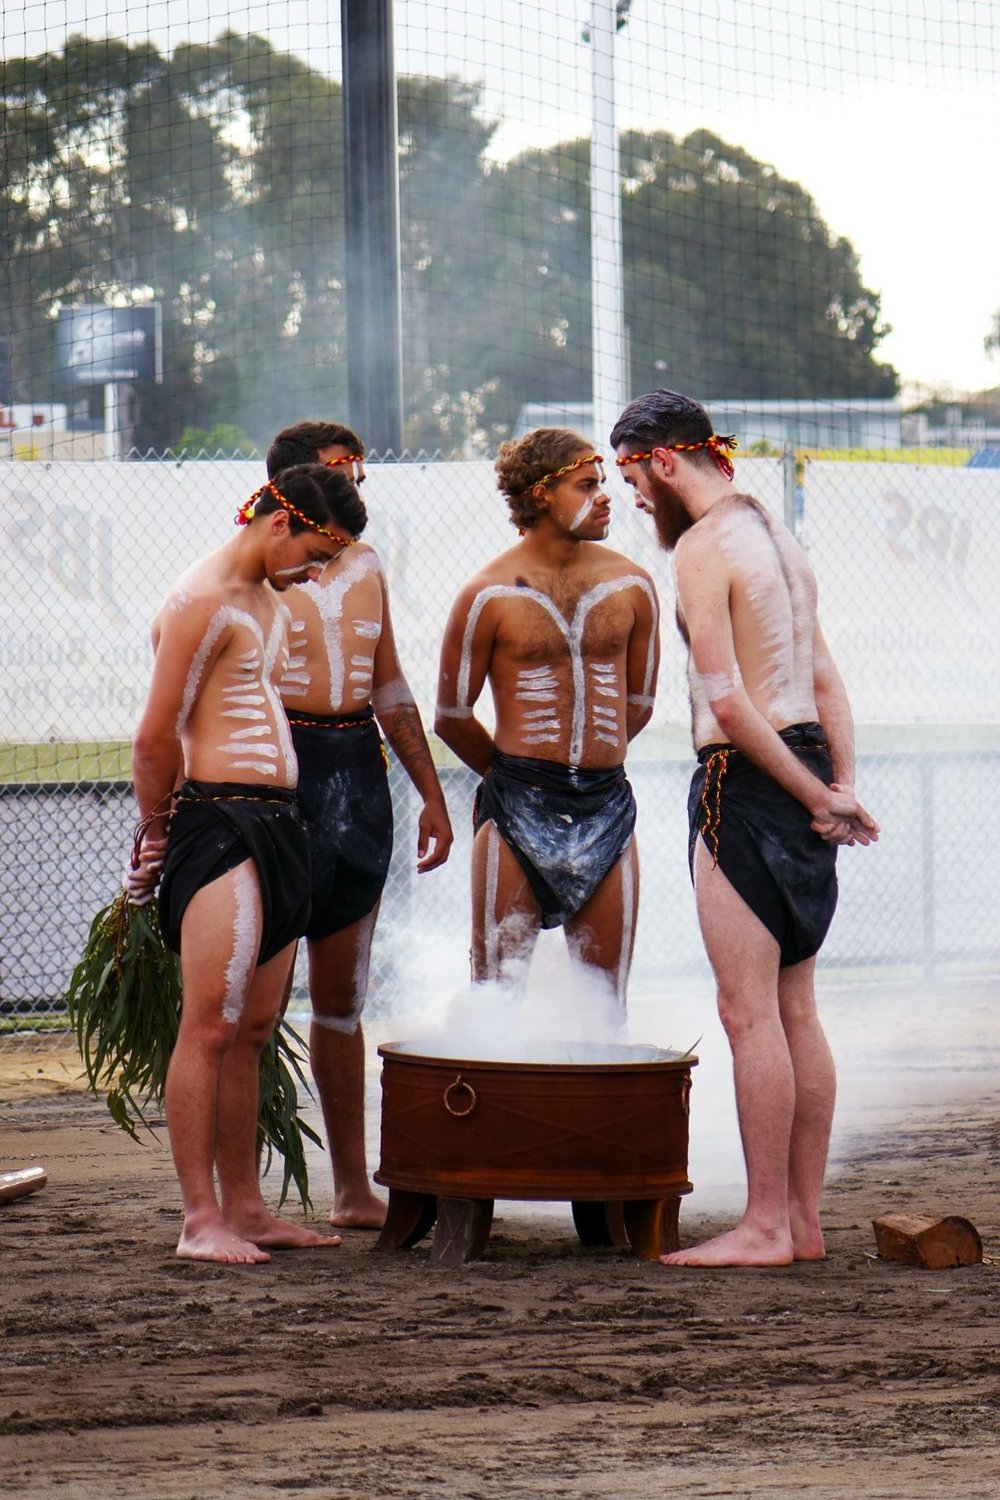 Baldja Moort performing a smoking ceremony and dancing for the west coast eagles.